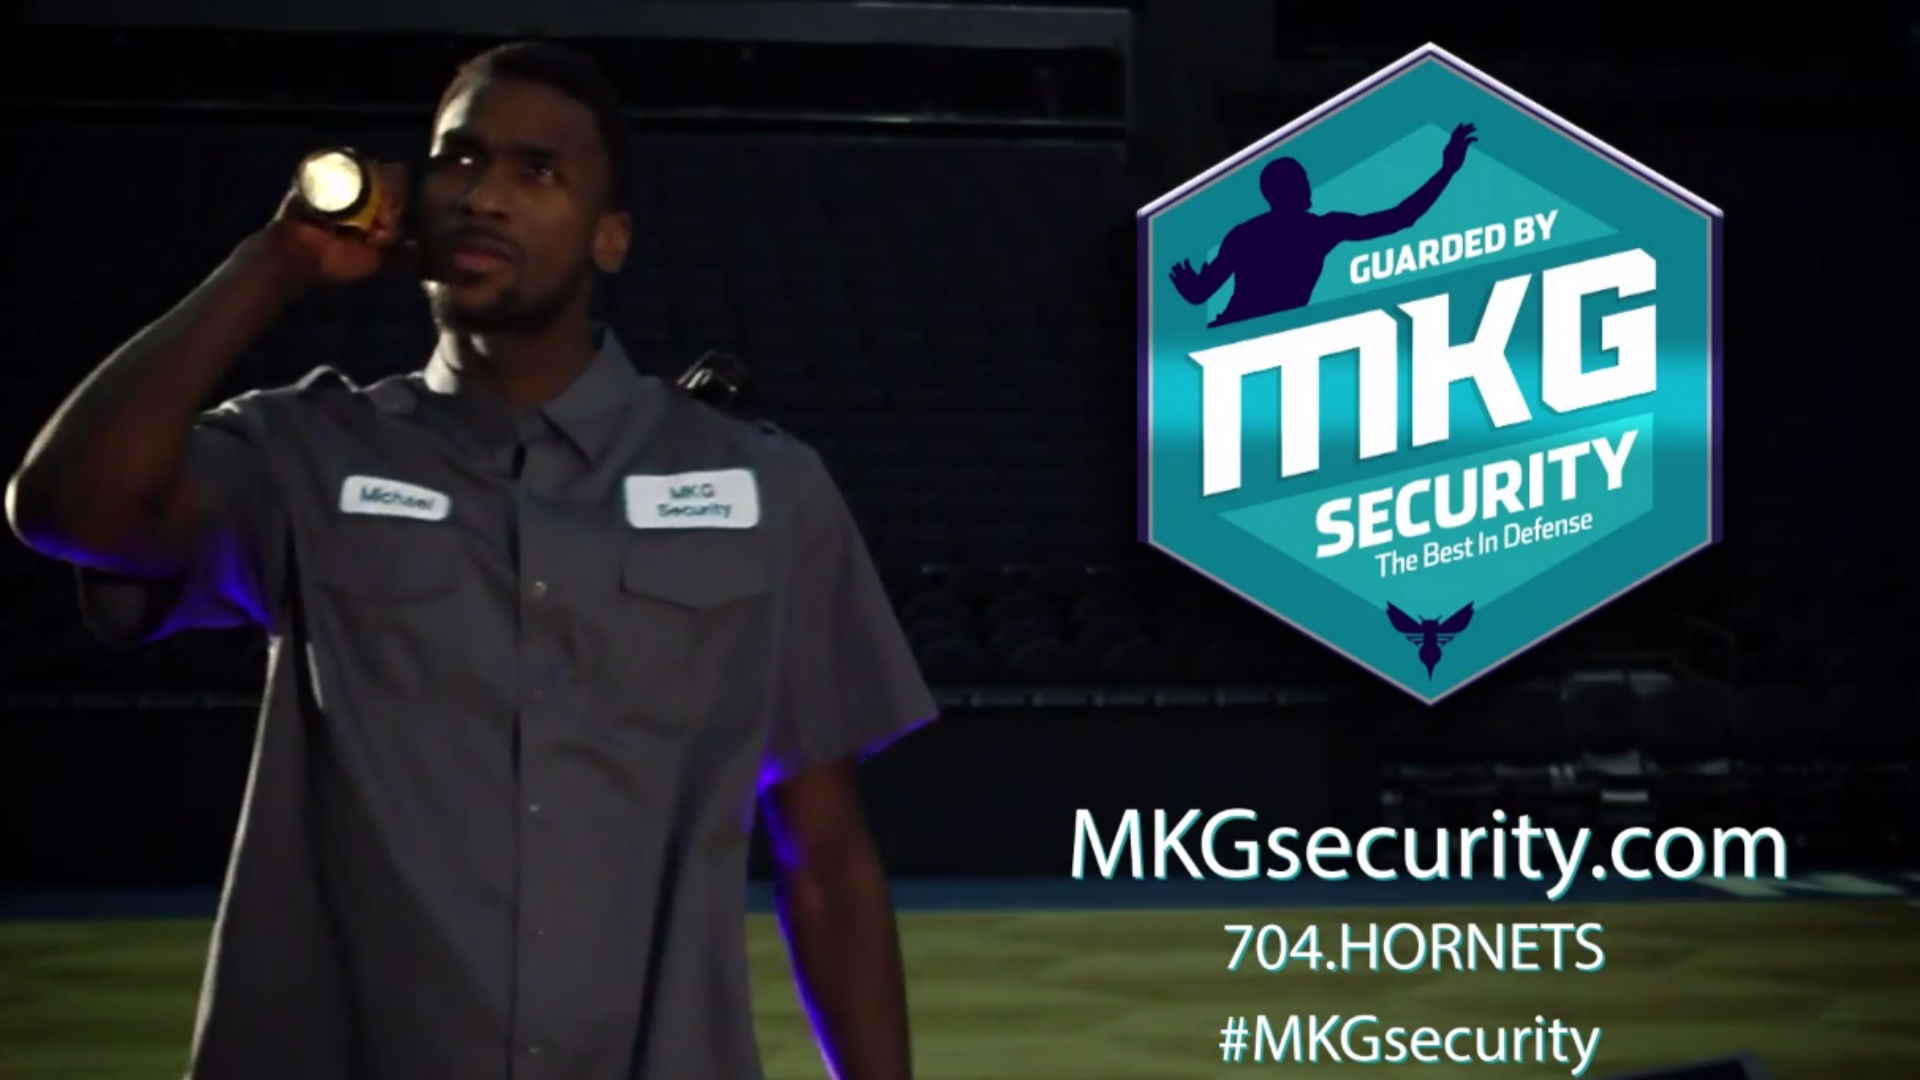 mkg-security-040215-FTR-youtube.jpg